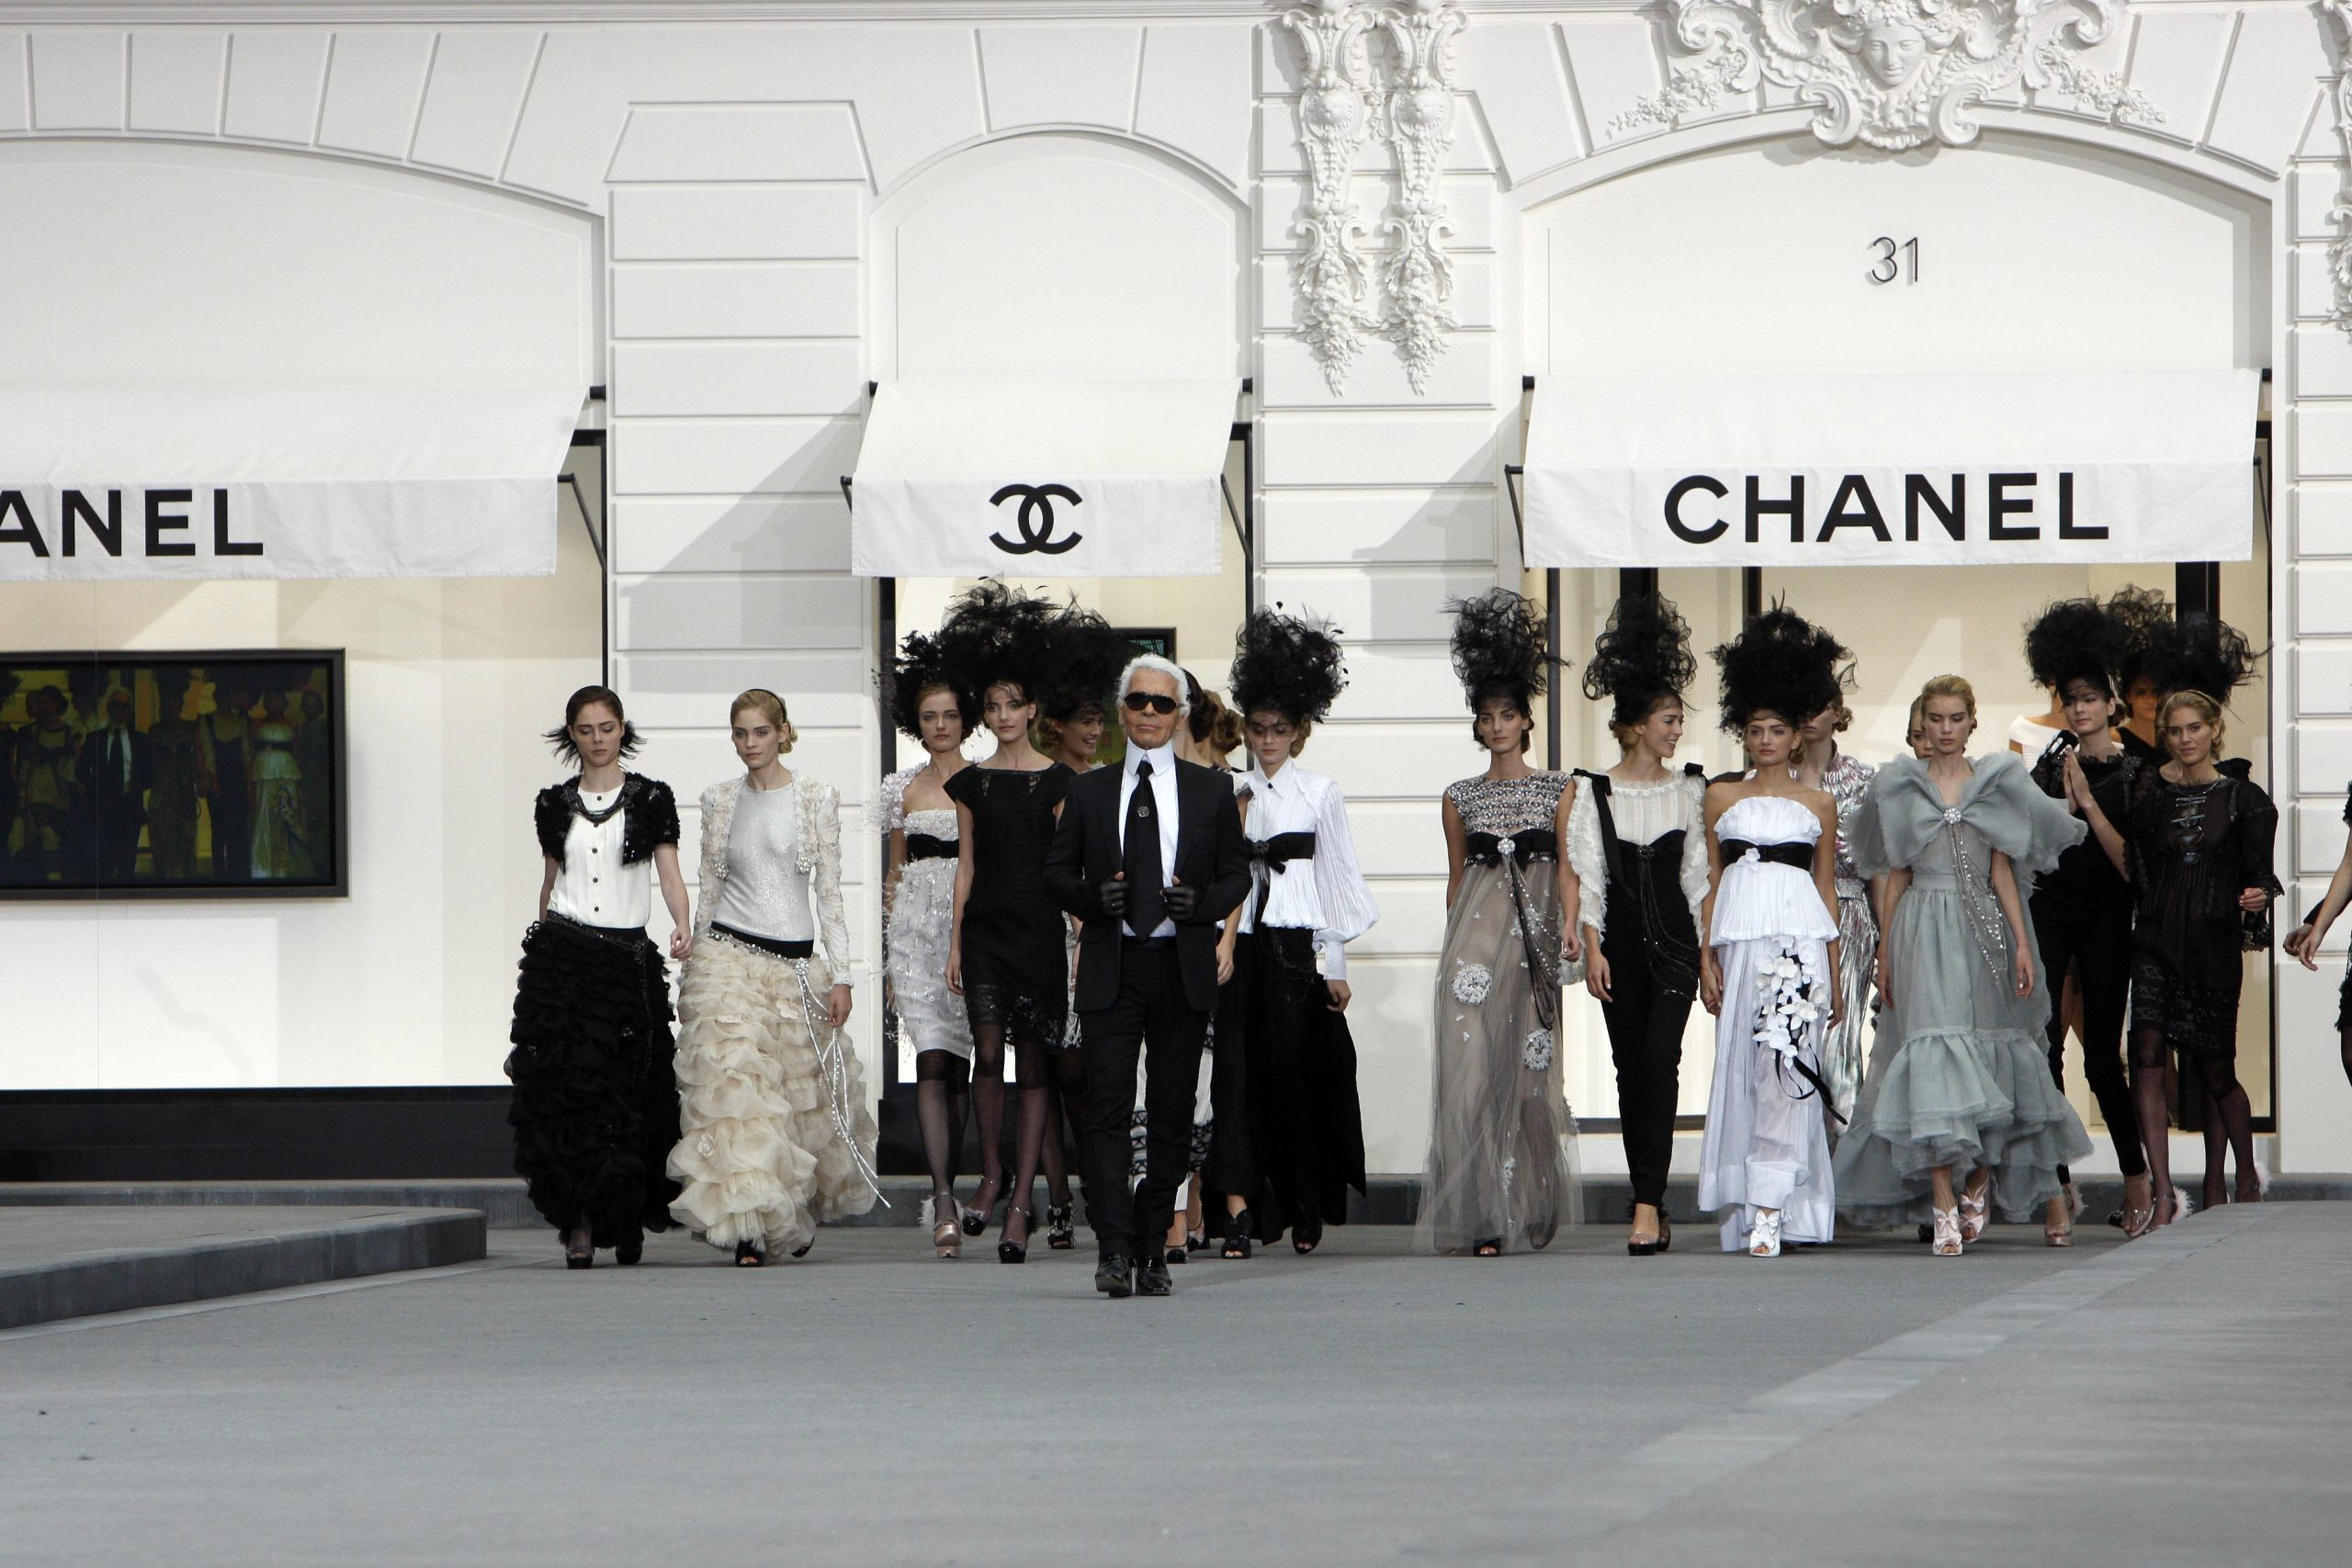 Chanel - Paris Fashion Week- Spring/Summer '09